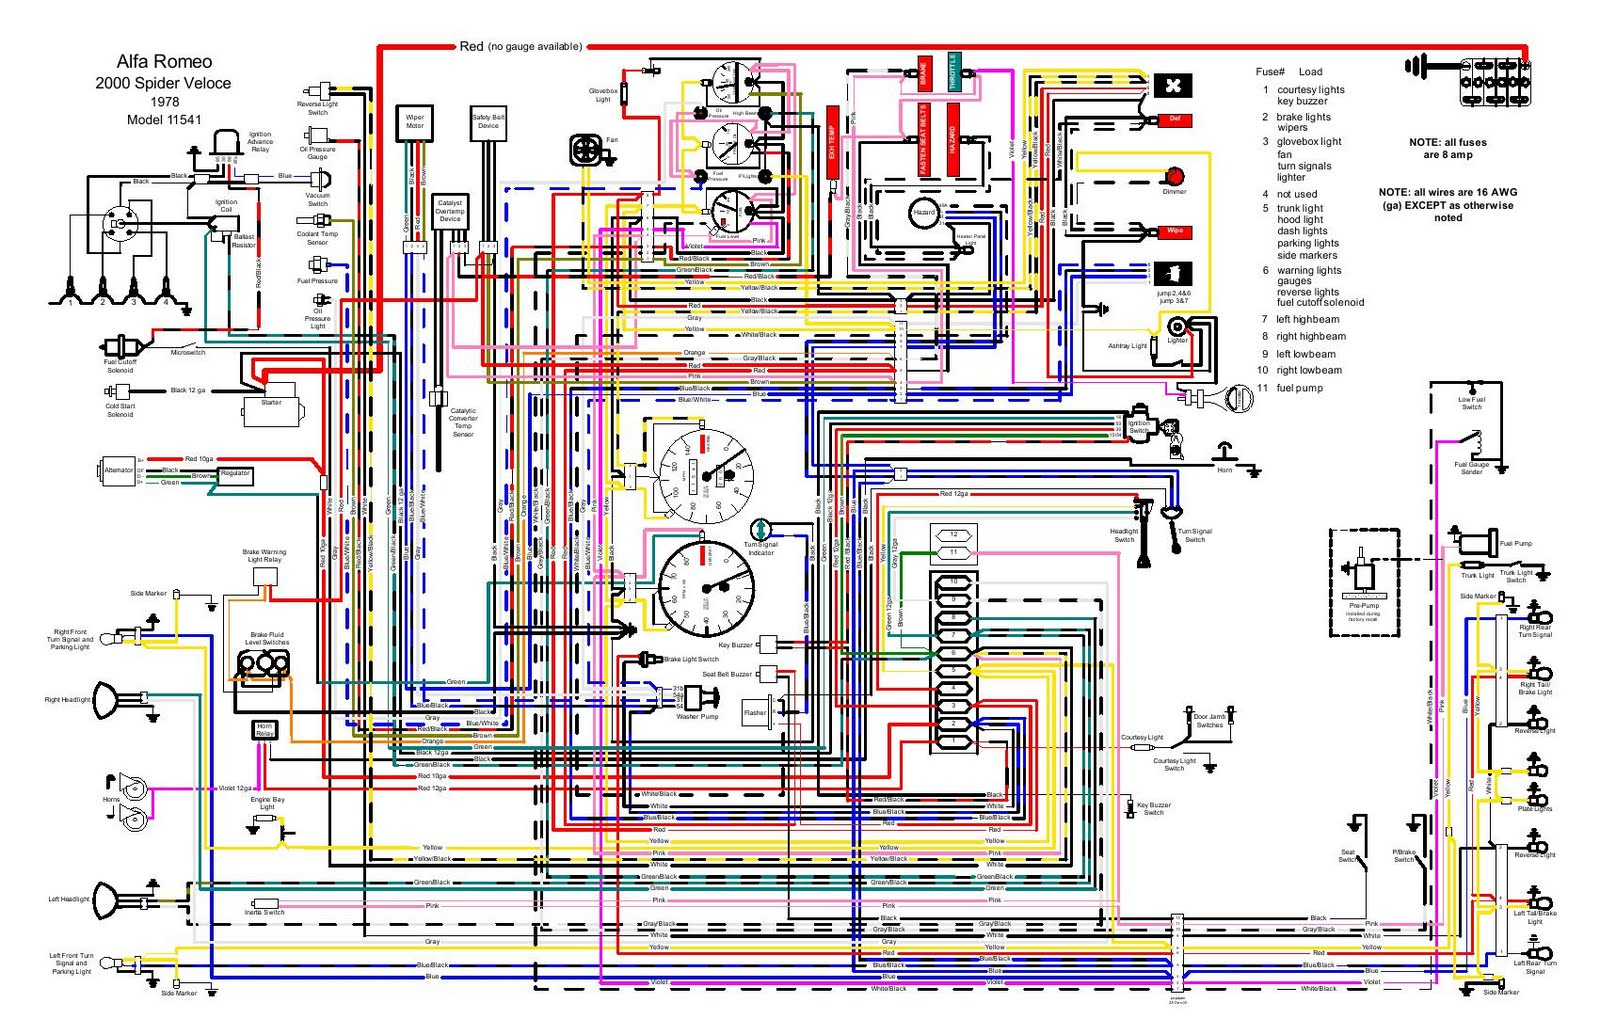 1978_Alfa_Romeo_2000_Spider_Wiring alfa romeo gt wiring diagram alfa wiring diagrams instruction alfa giulietta wiring diagram at nearapp.co